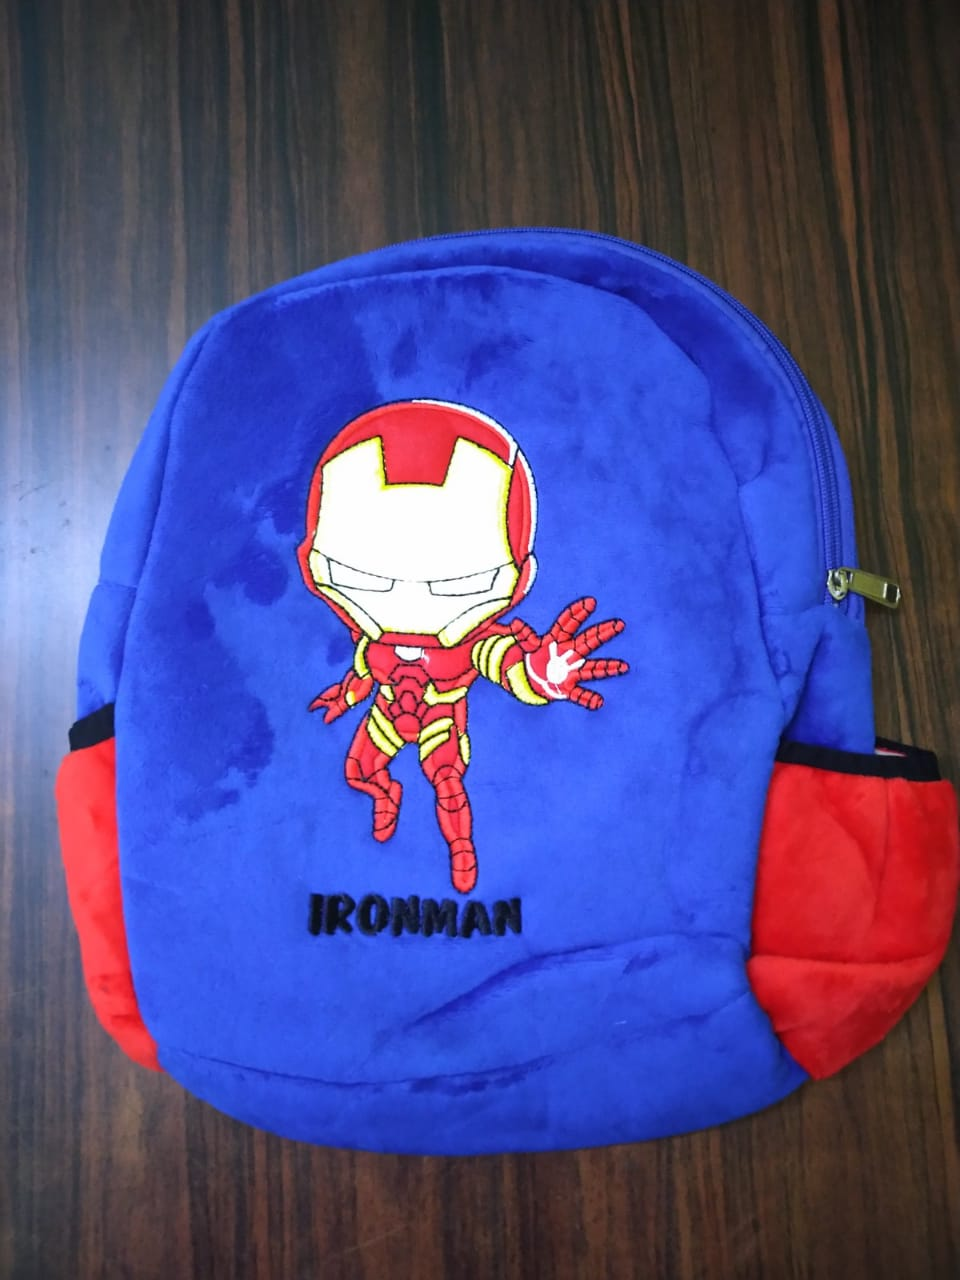 Kuhu Creations Cute Cartoon Style Small Bag, Backpack  Blue Style 1 Units  IRONM  .